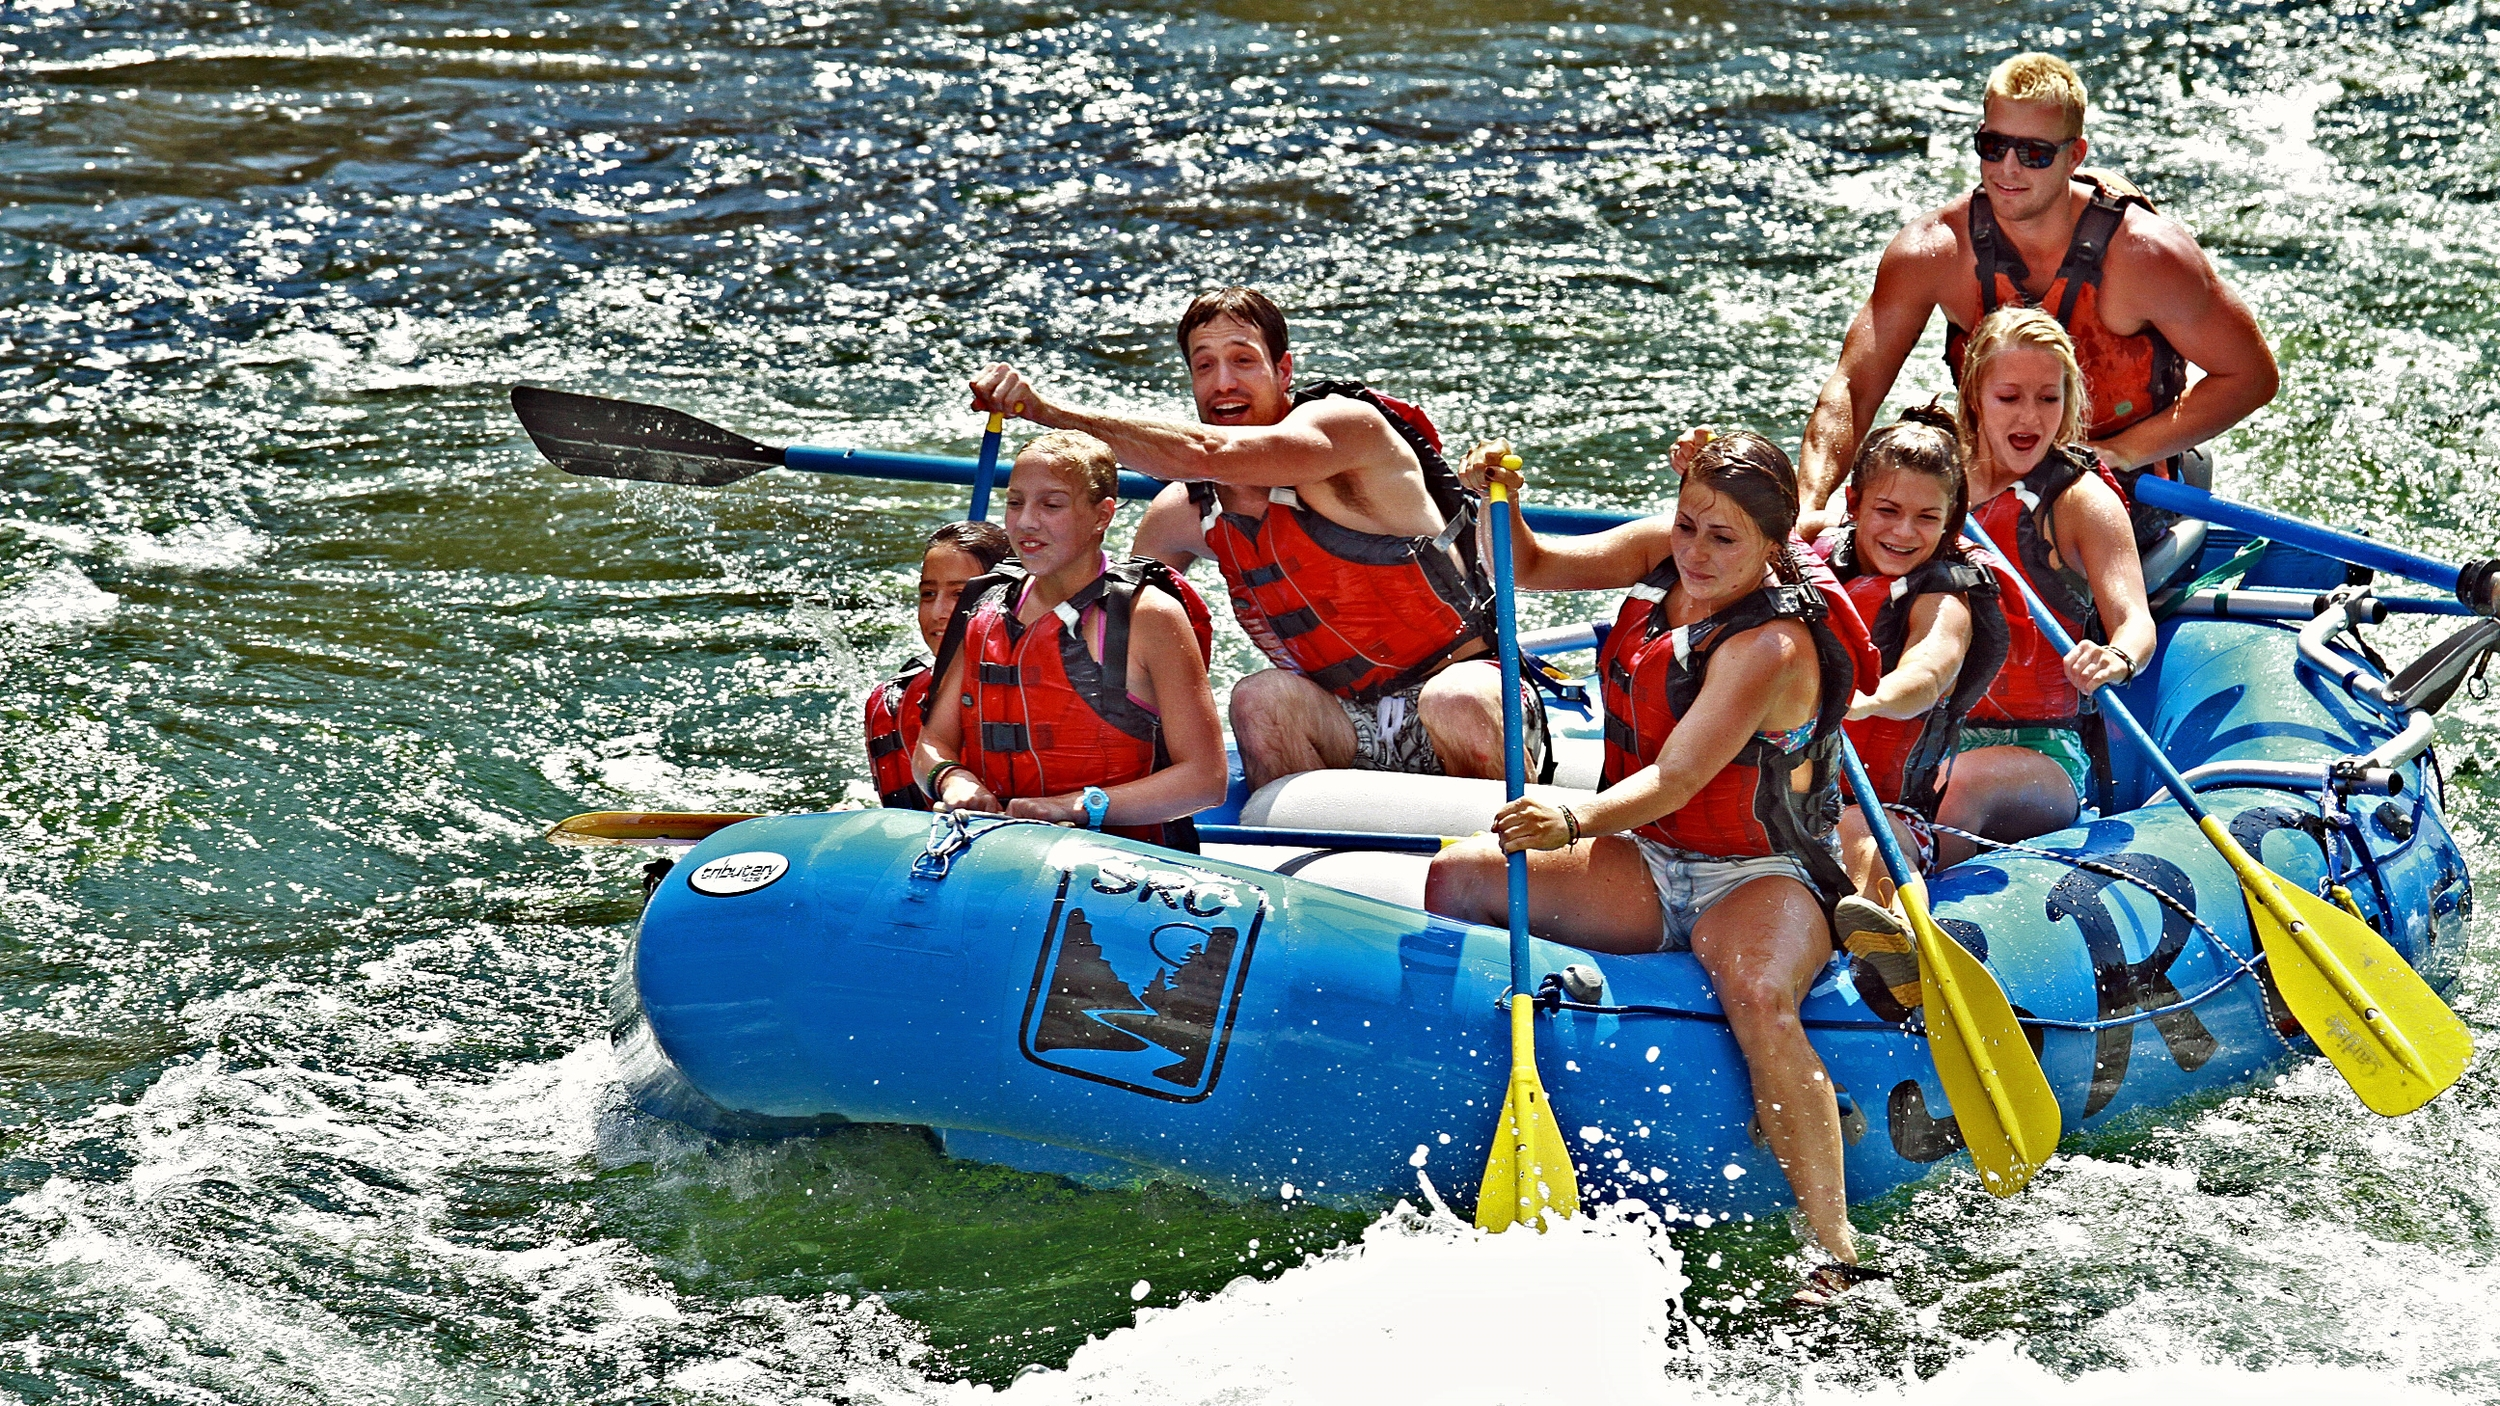 Group relaxing while whitewater rafting near Riggins Idaho.